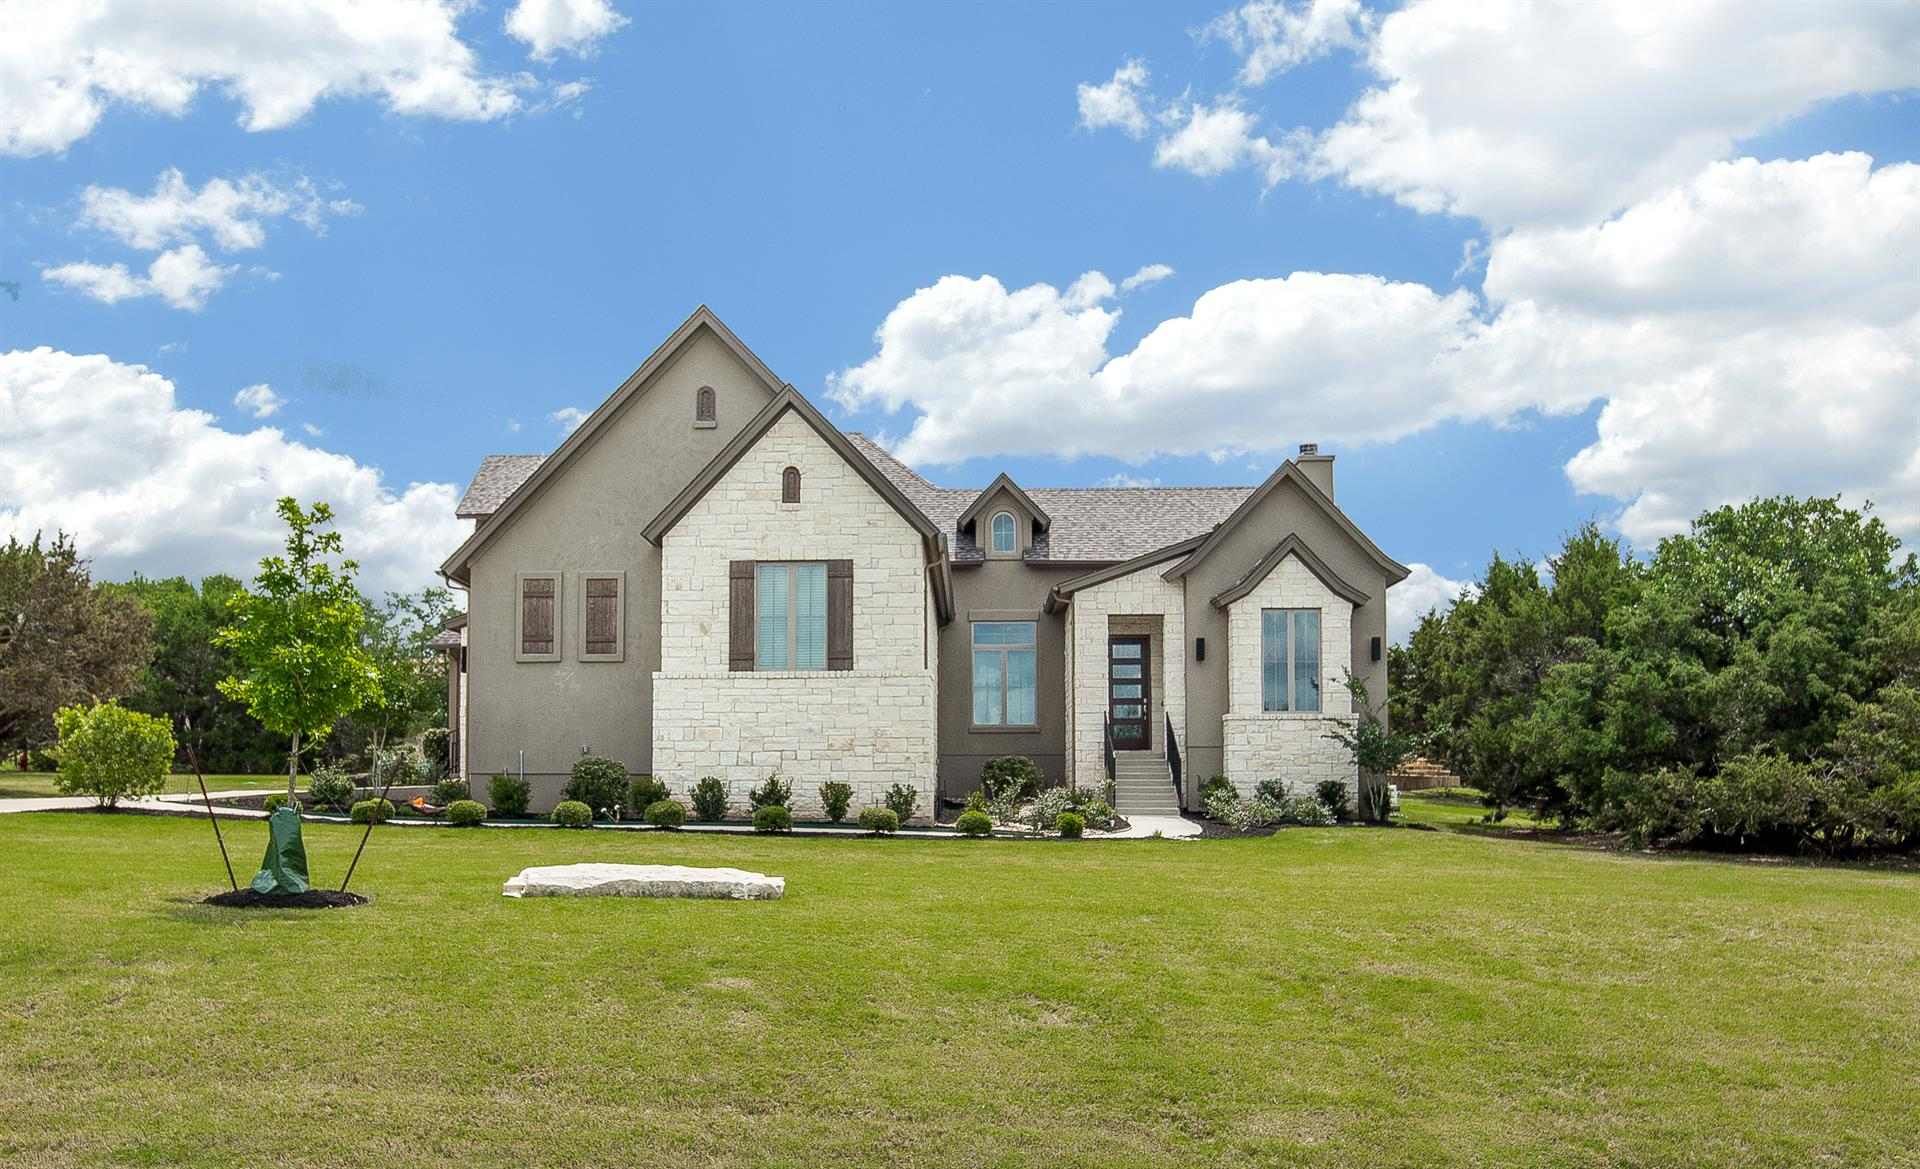 Additional photo for property listing at 251 Shallowwater Cove 251 Shallowwater Cove Driftwood, Texas 78619 Estados Unidos